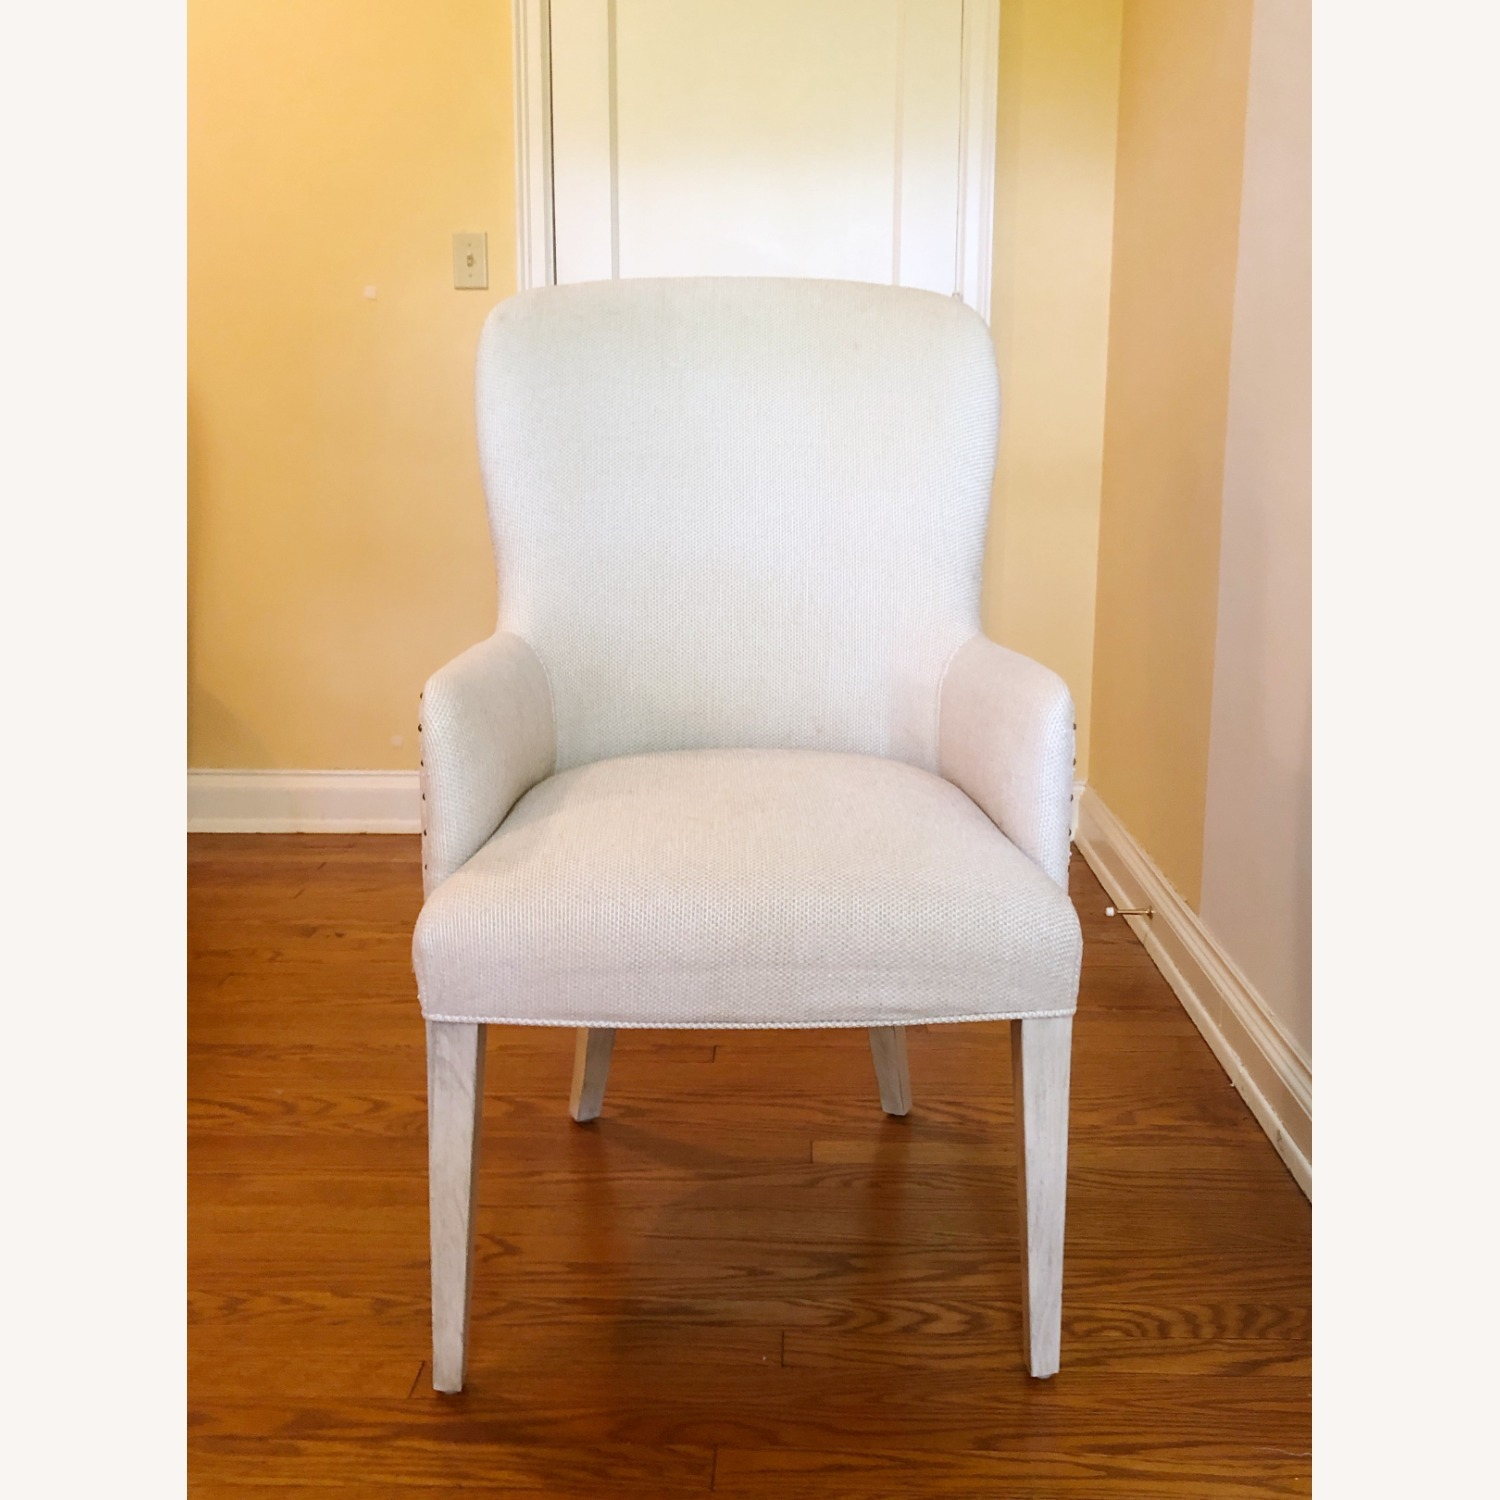 Oyster Bay Baxter Upholstered Arm Chair - image-0